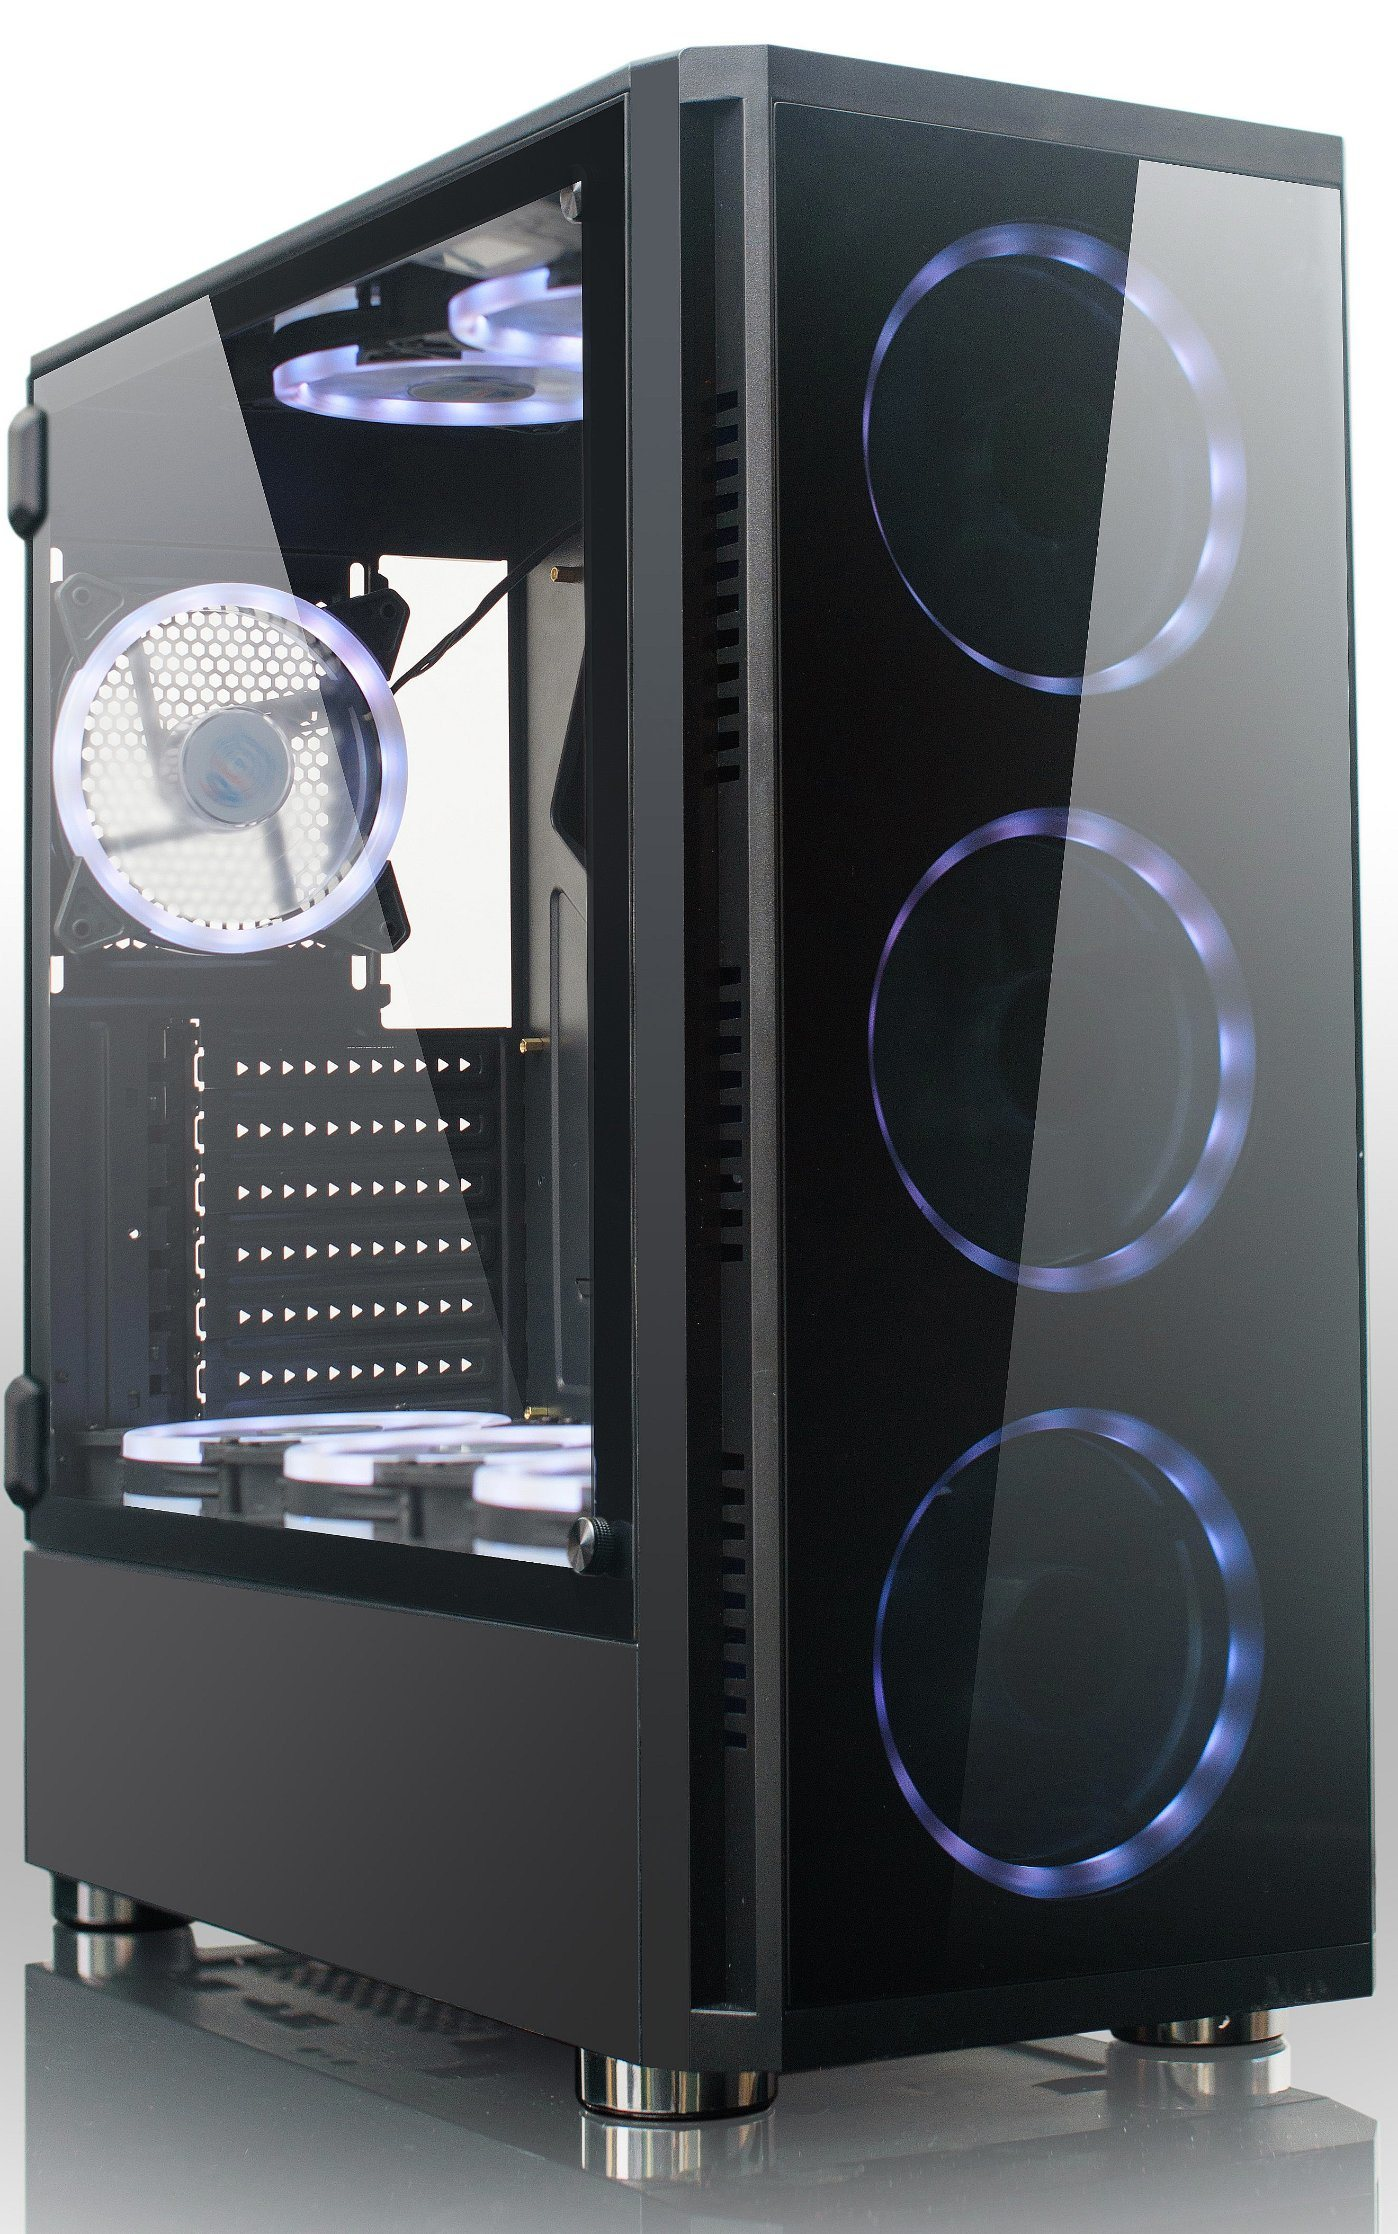 Case Pc Hot Item Best Sale Atx Gaming Pc Case Computer Case With Rgb Fan Opened Glass Window